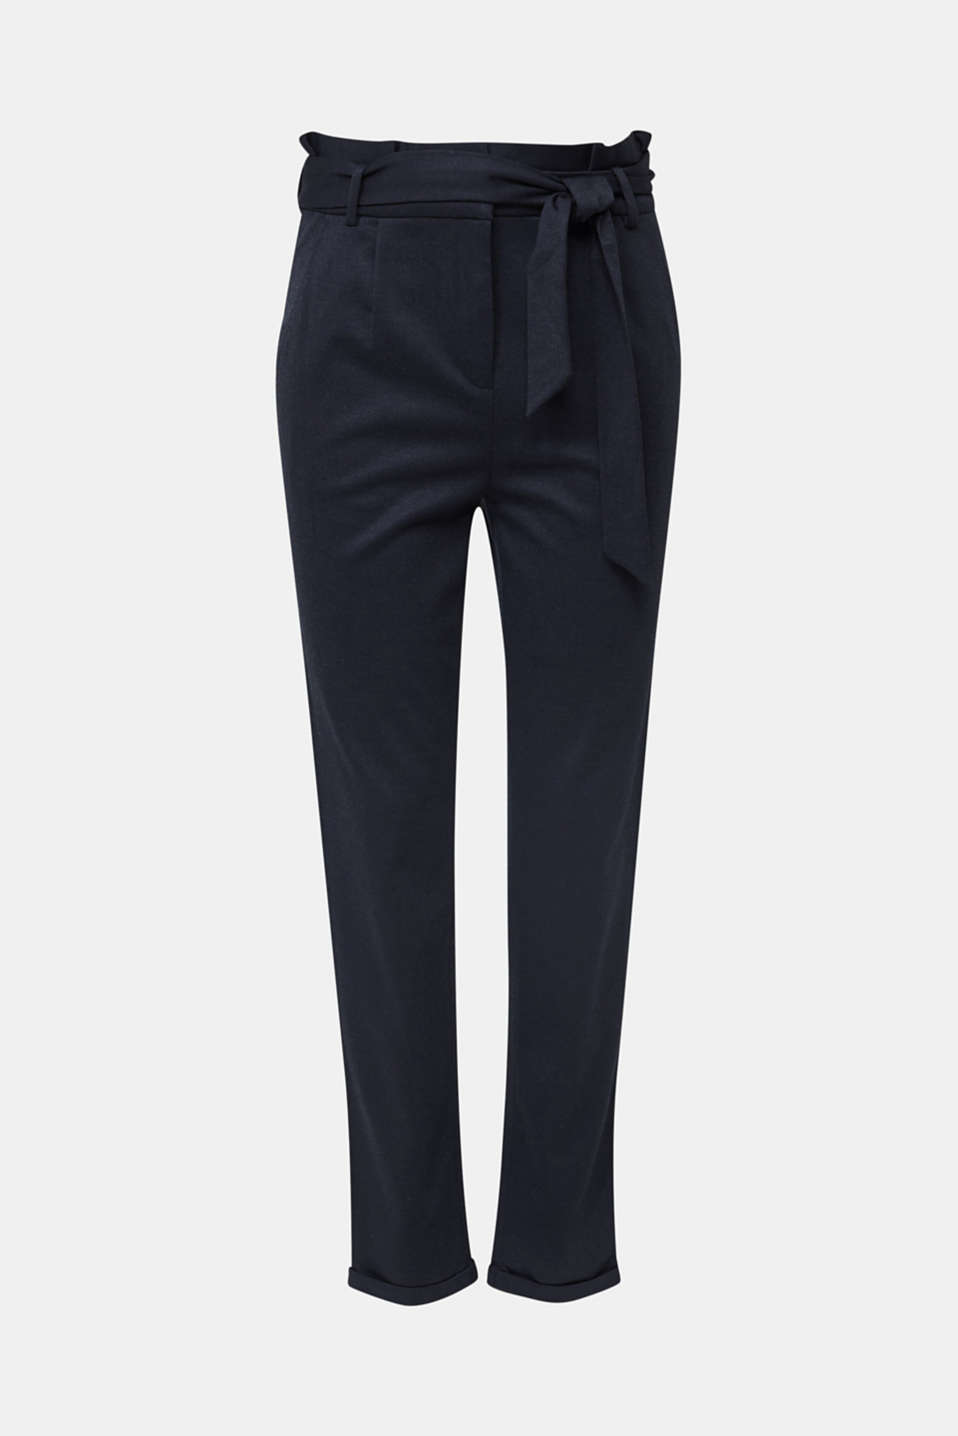 Melange trousers with paper bag waistband, NAVY, detail image number 6